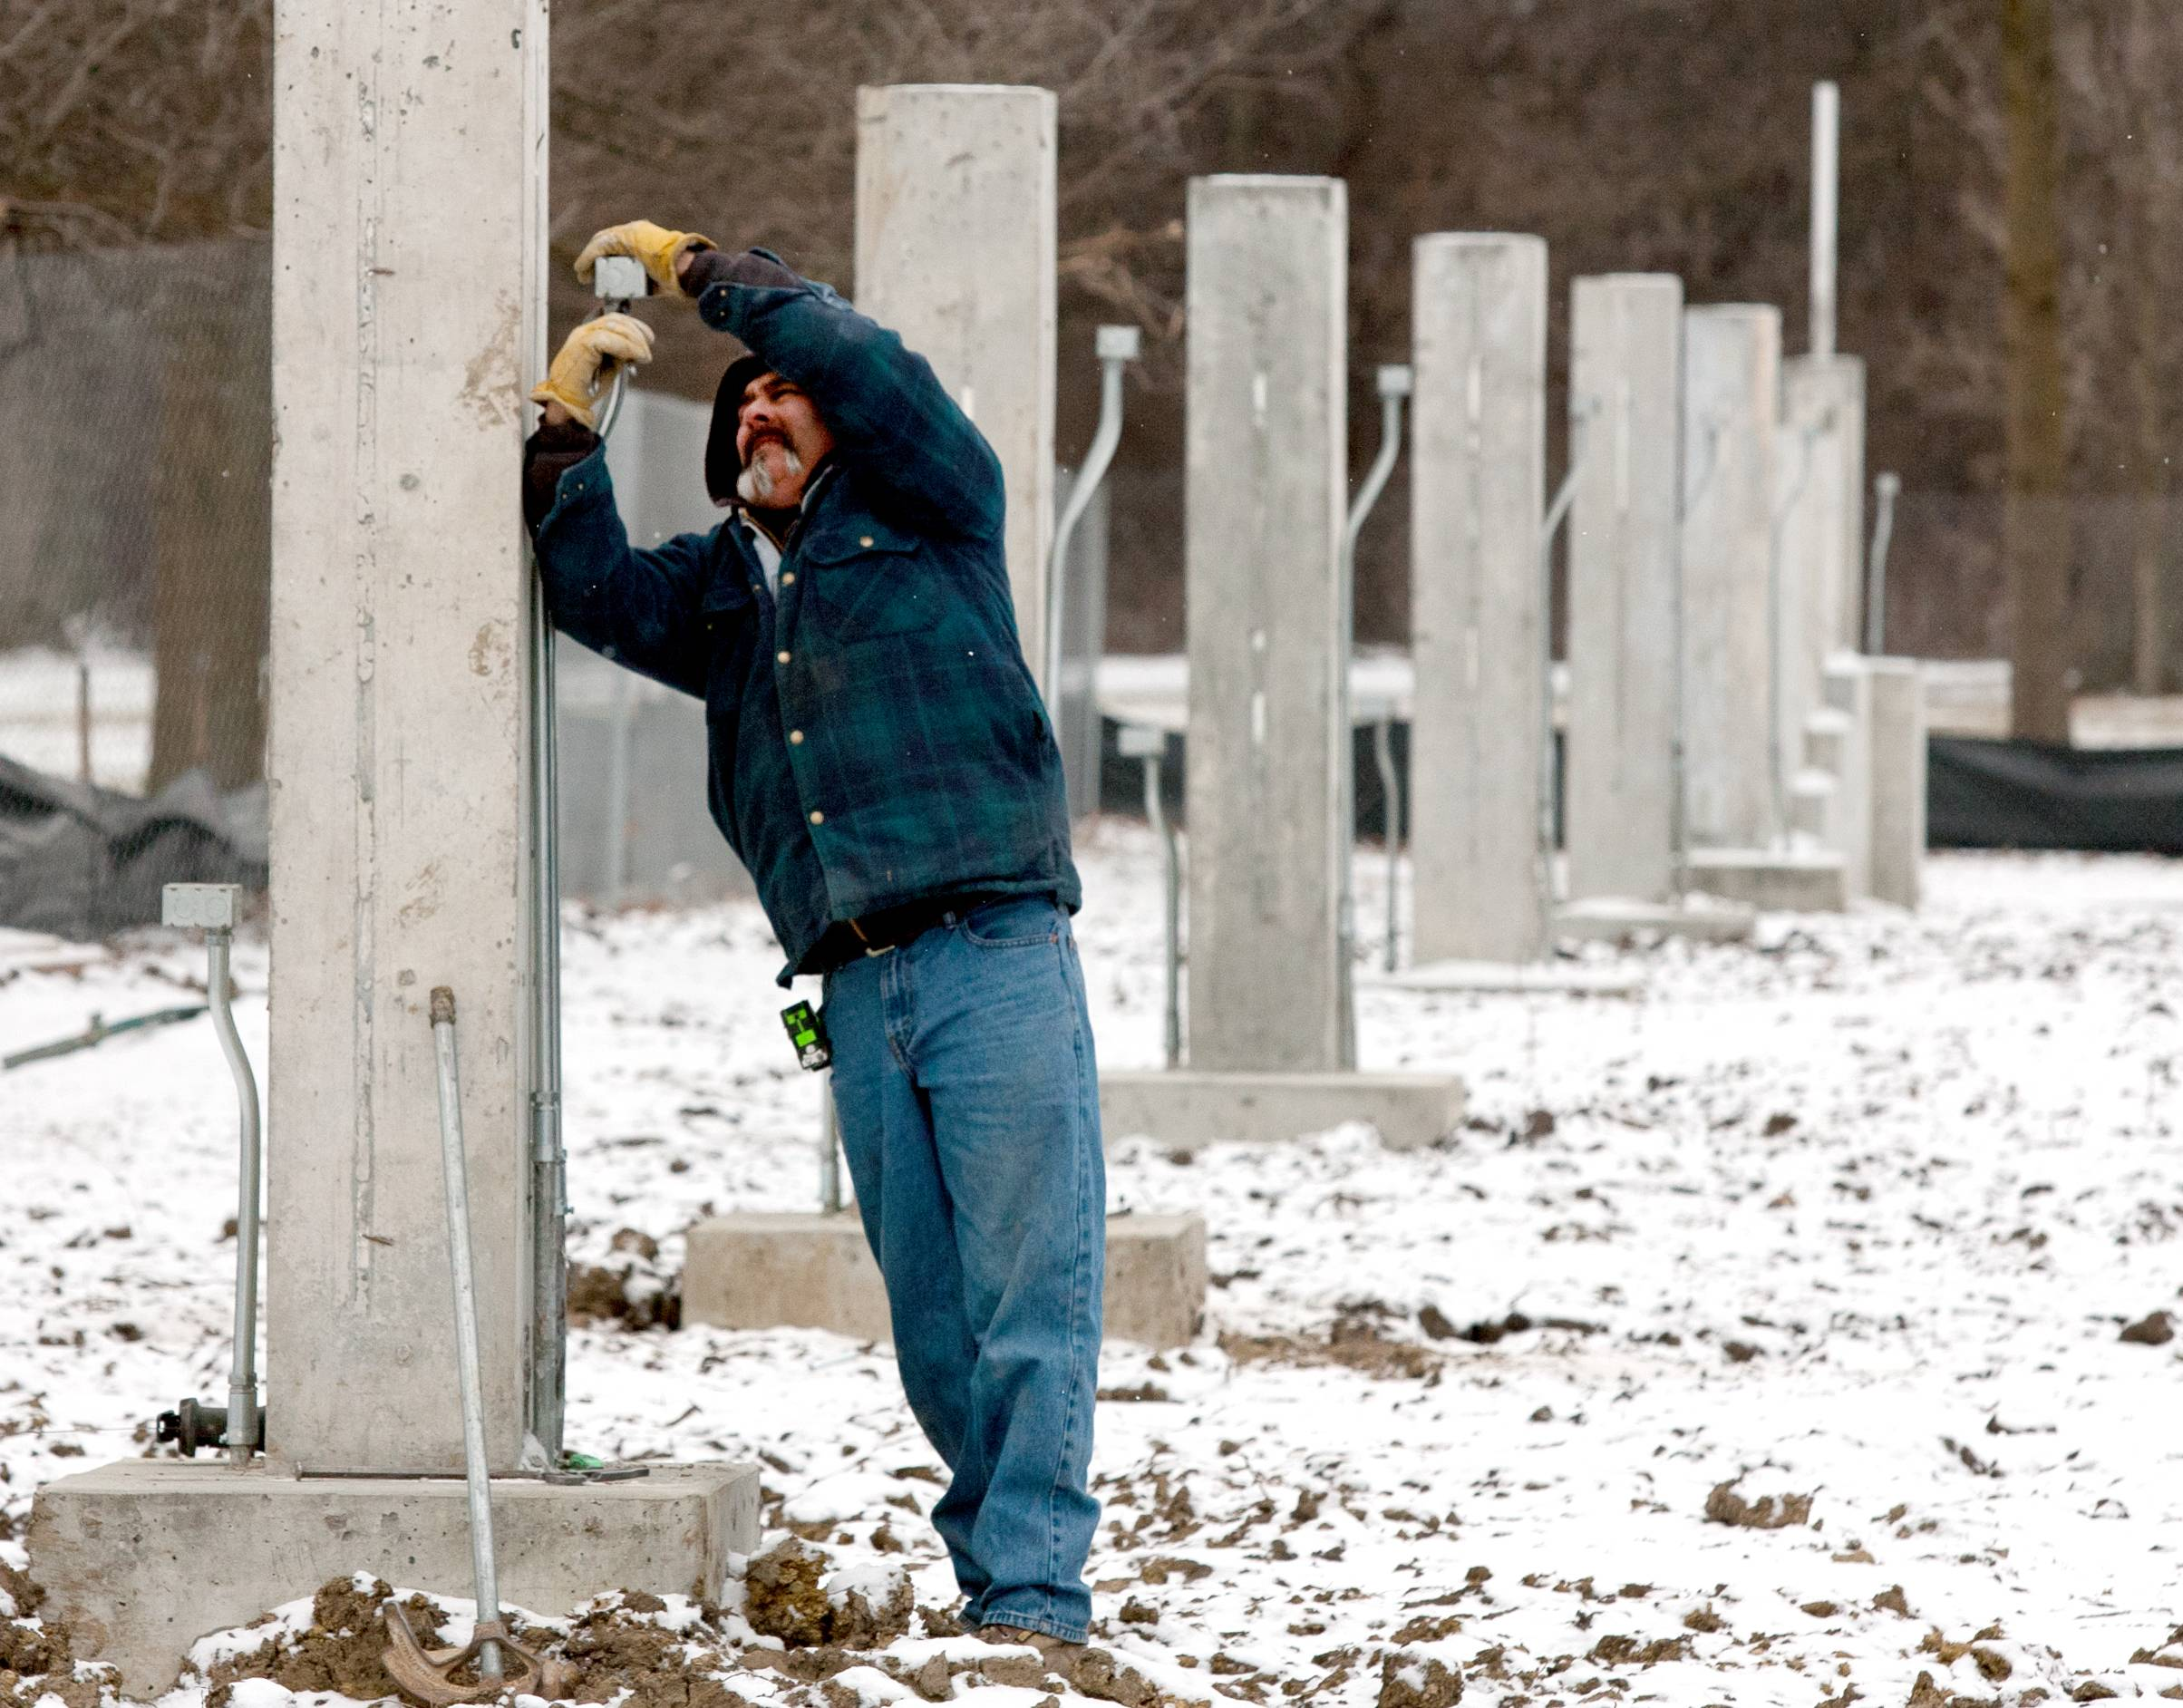 Construction on the Cantigny Park entrance continues, with hopes of finishing the project by early June. Jeff Zbreski, of Anchor Electric in Carol Stream, installs electrical boxes on each of the pillars. This is the first major upgrade to the park's entrance since it opened in the 1950s.